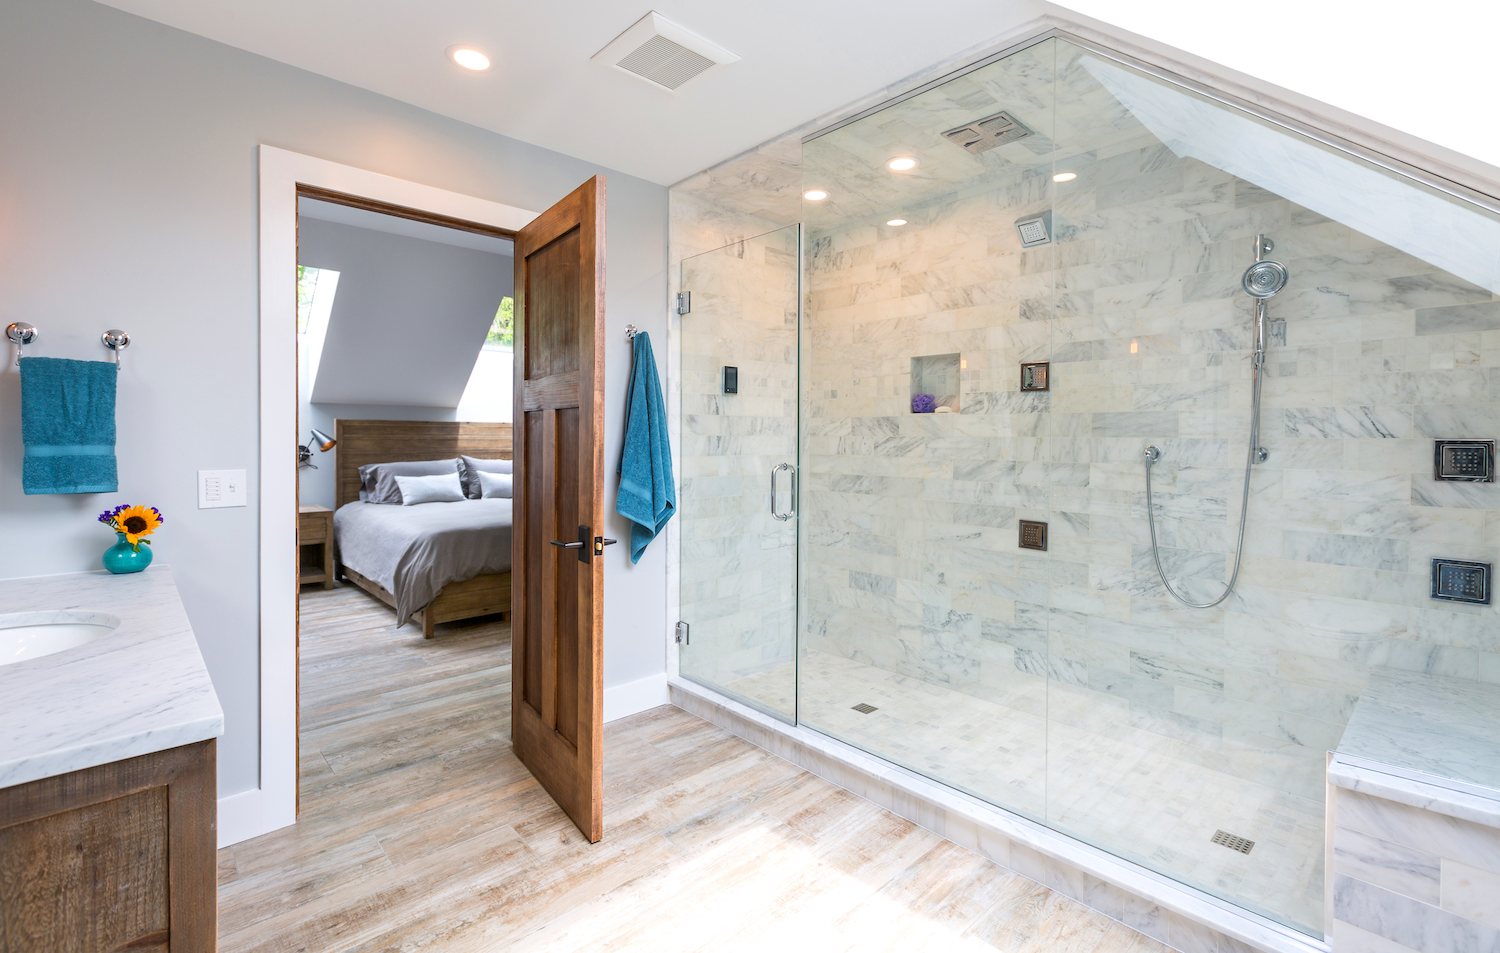 vermont-interior-design-glass-shower-bathroom.jpg